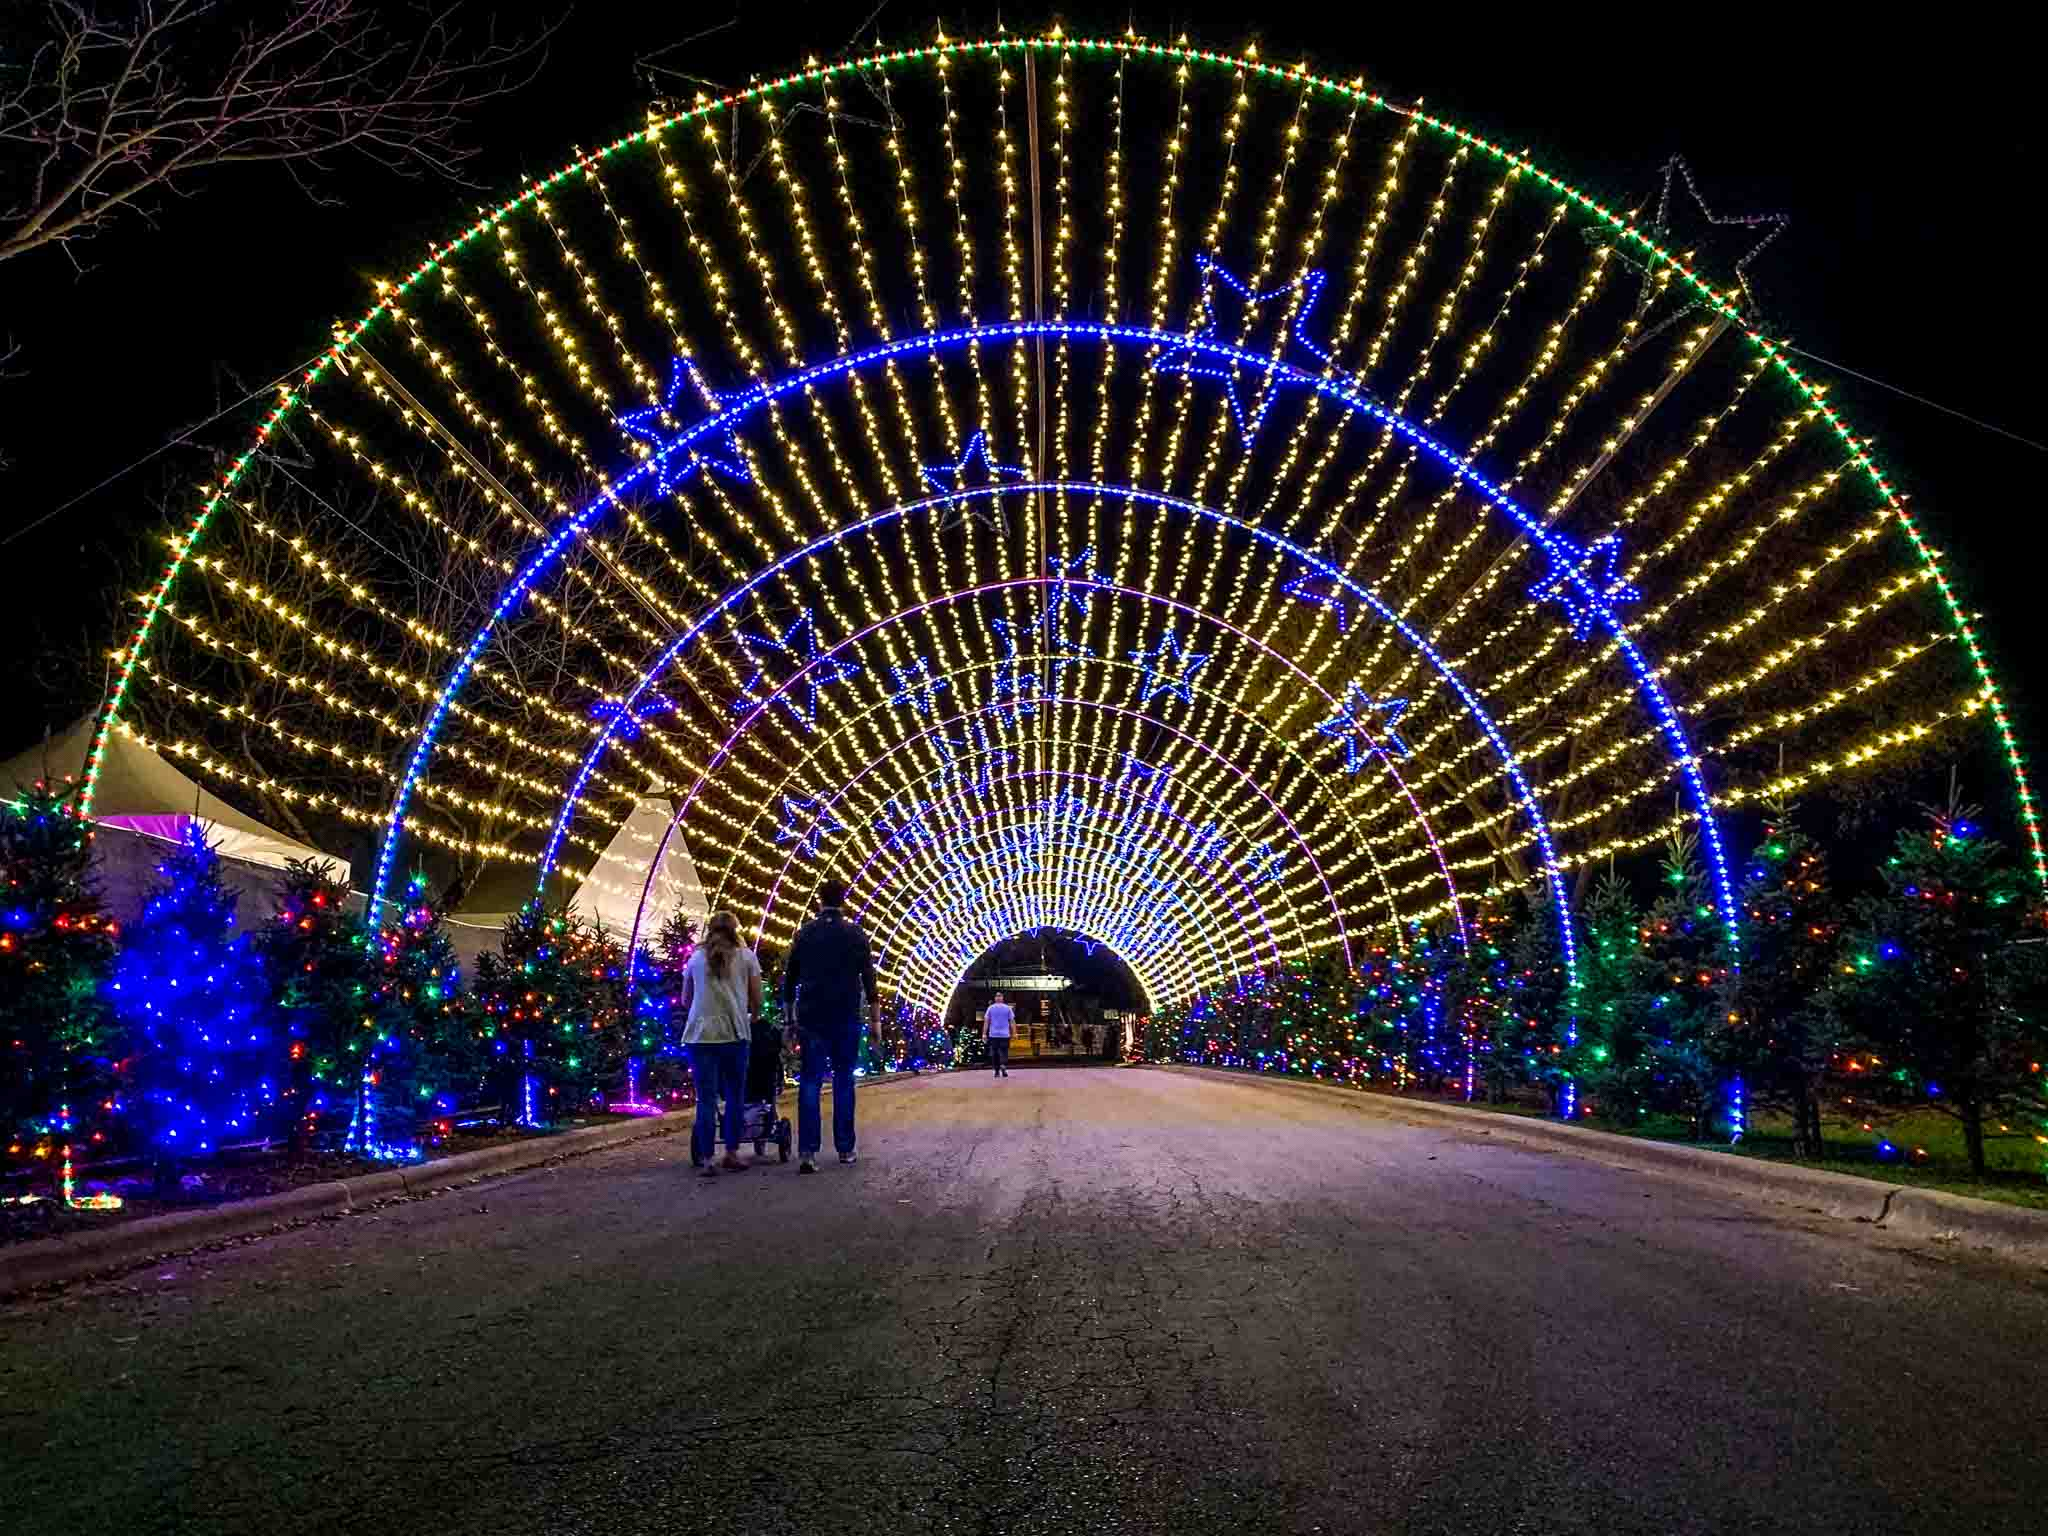 People walking through a tunnel of Christmas lights at night